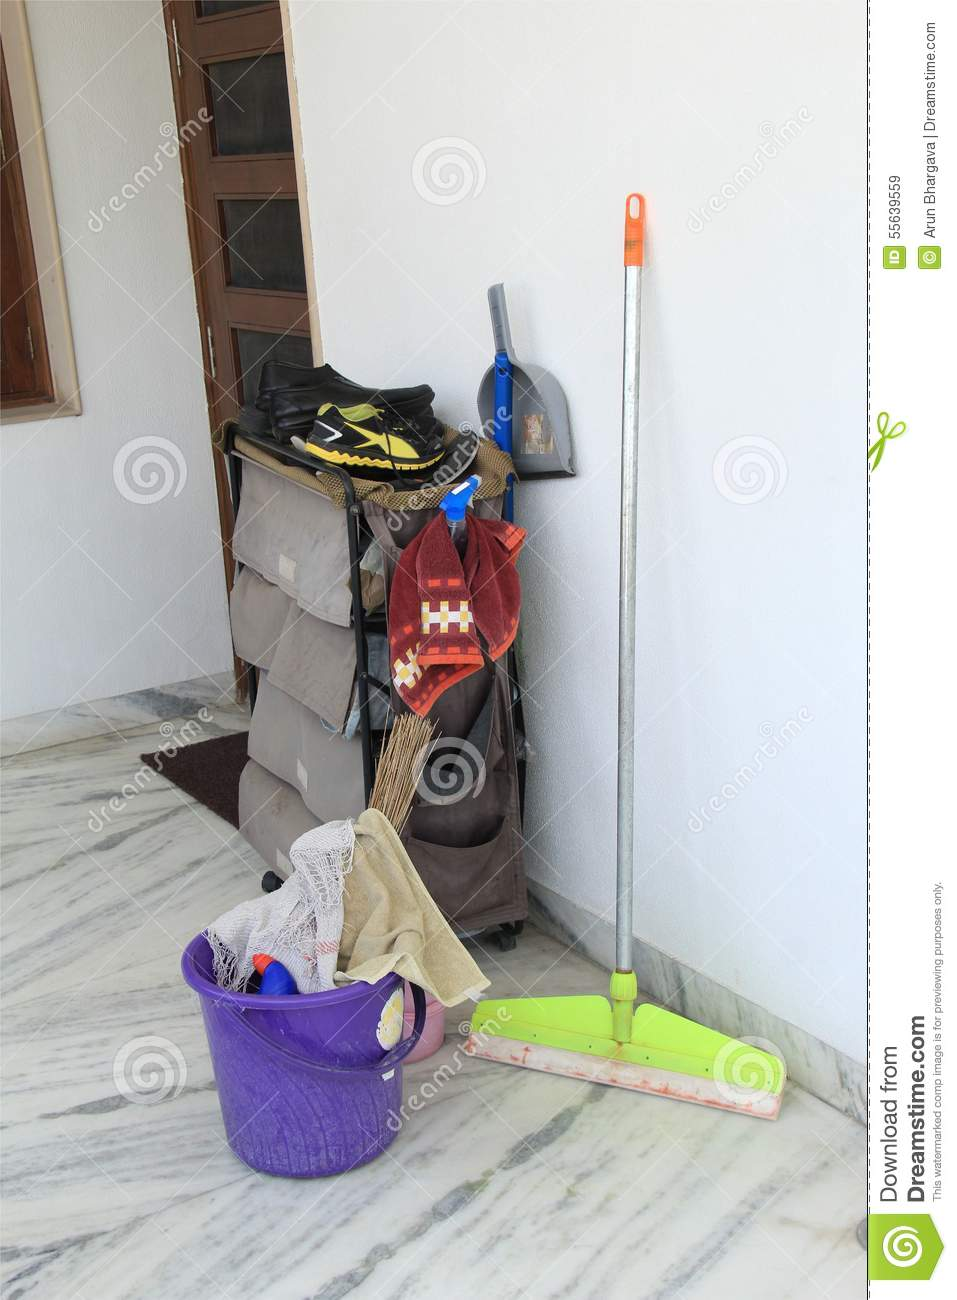 House cleaning tools stock image image of dust clean for Other uses for household items